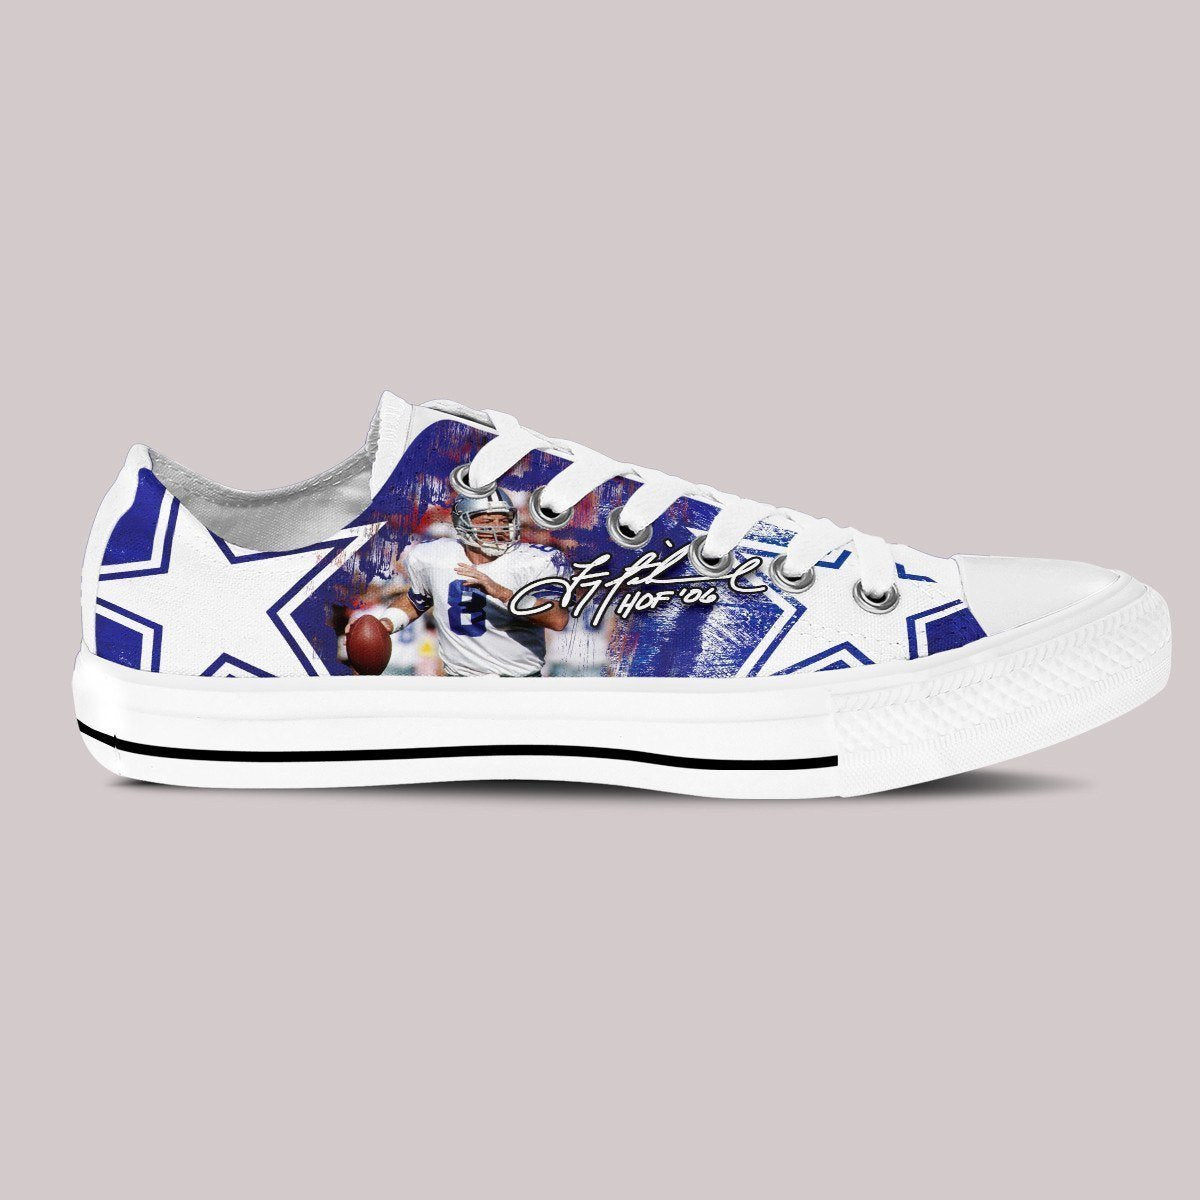 troy aikman mens low cut sneakers